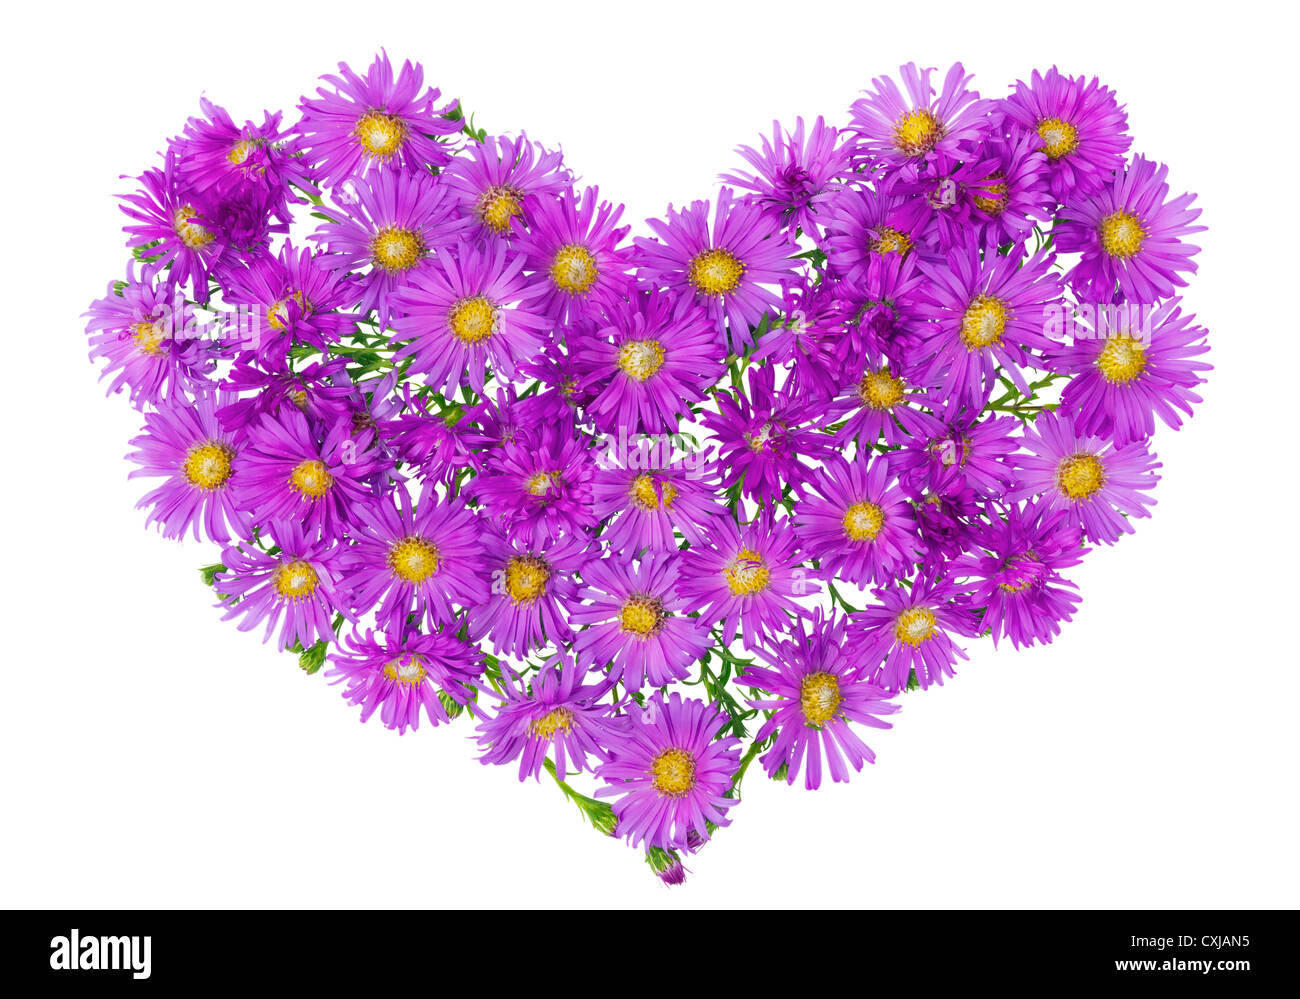 Heart floral symbol from autumn magenta chrysanthemums flowers background. Isolated Stock Photo